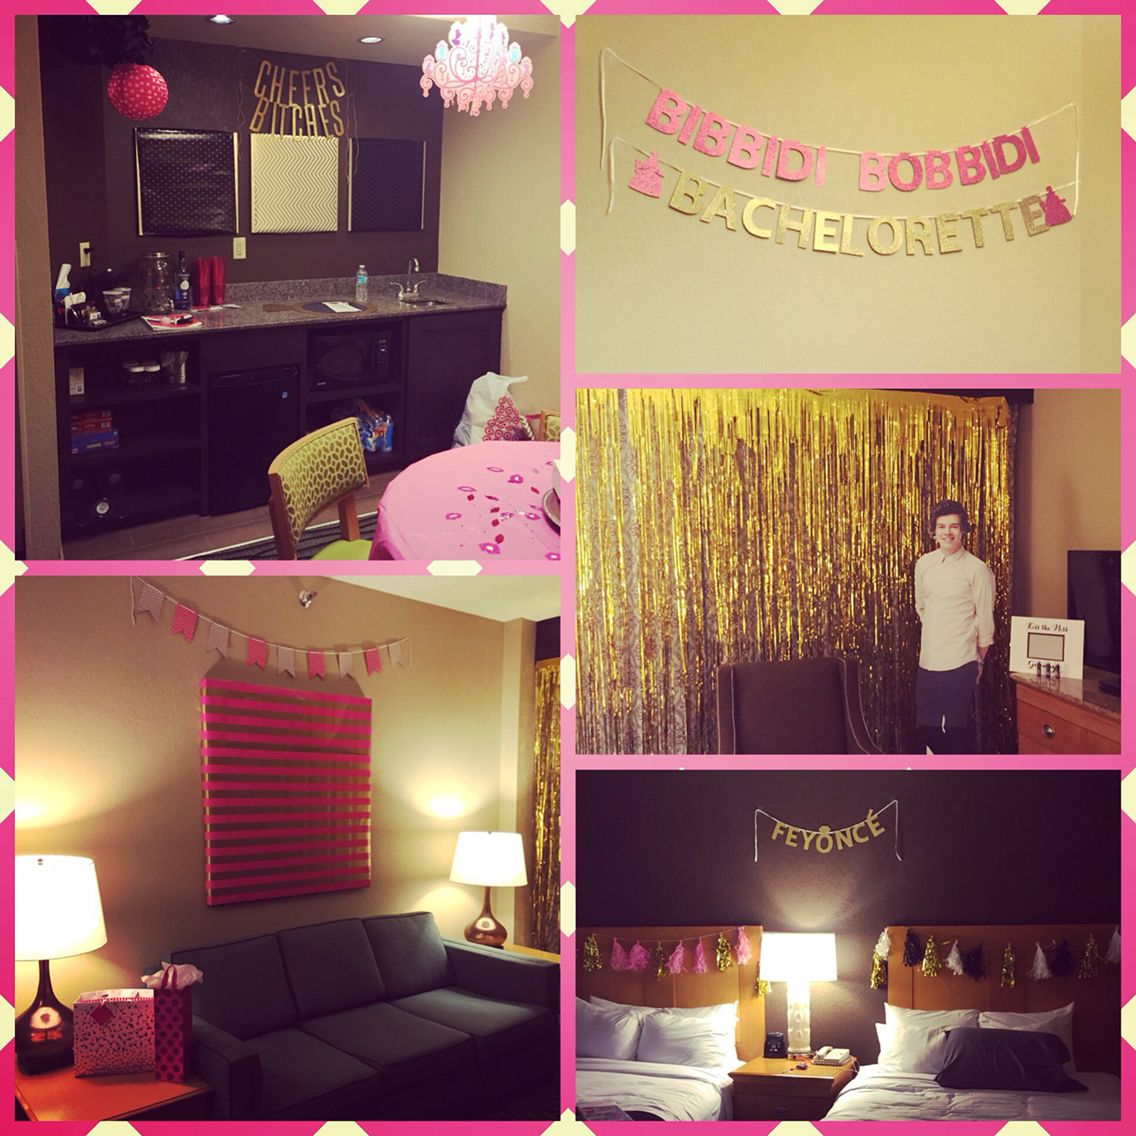 Decoration Hotel Hotel Room Decorated For A Bachelorette Party